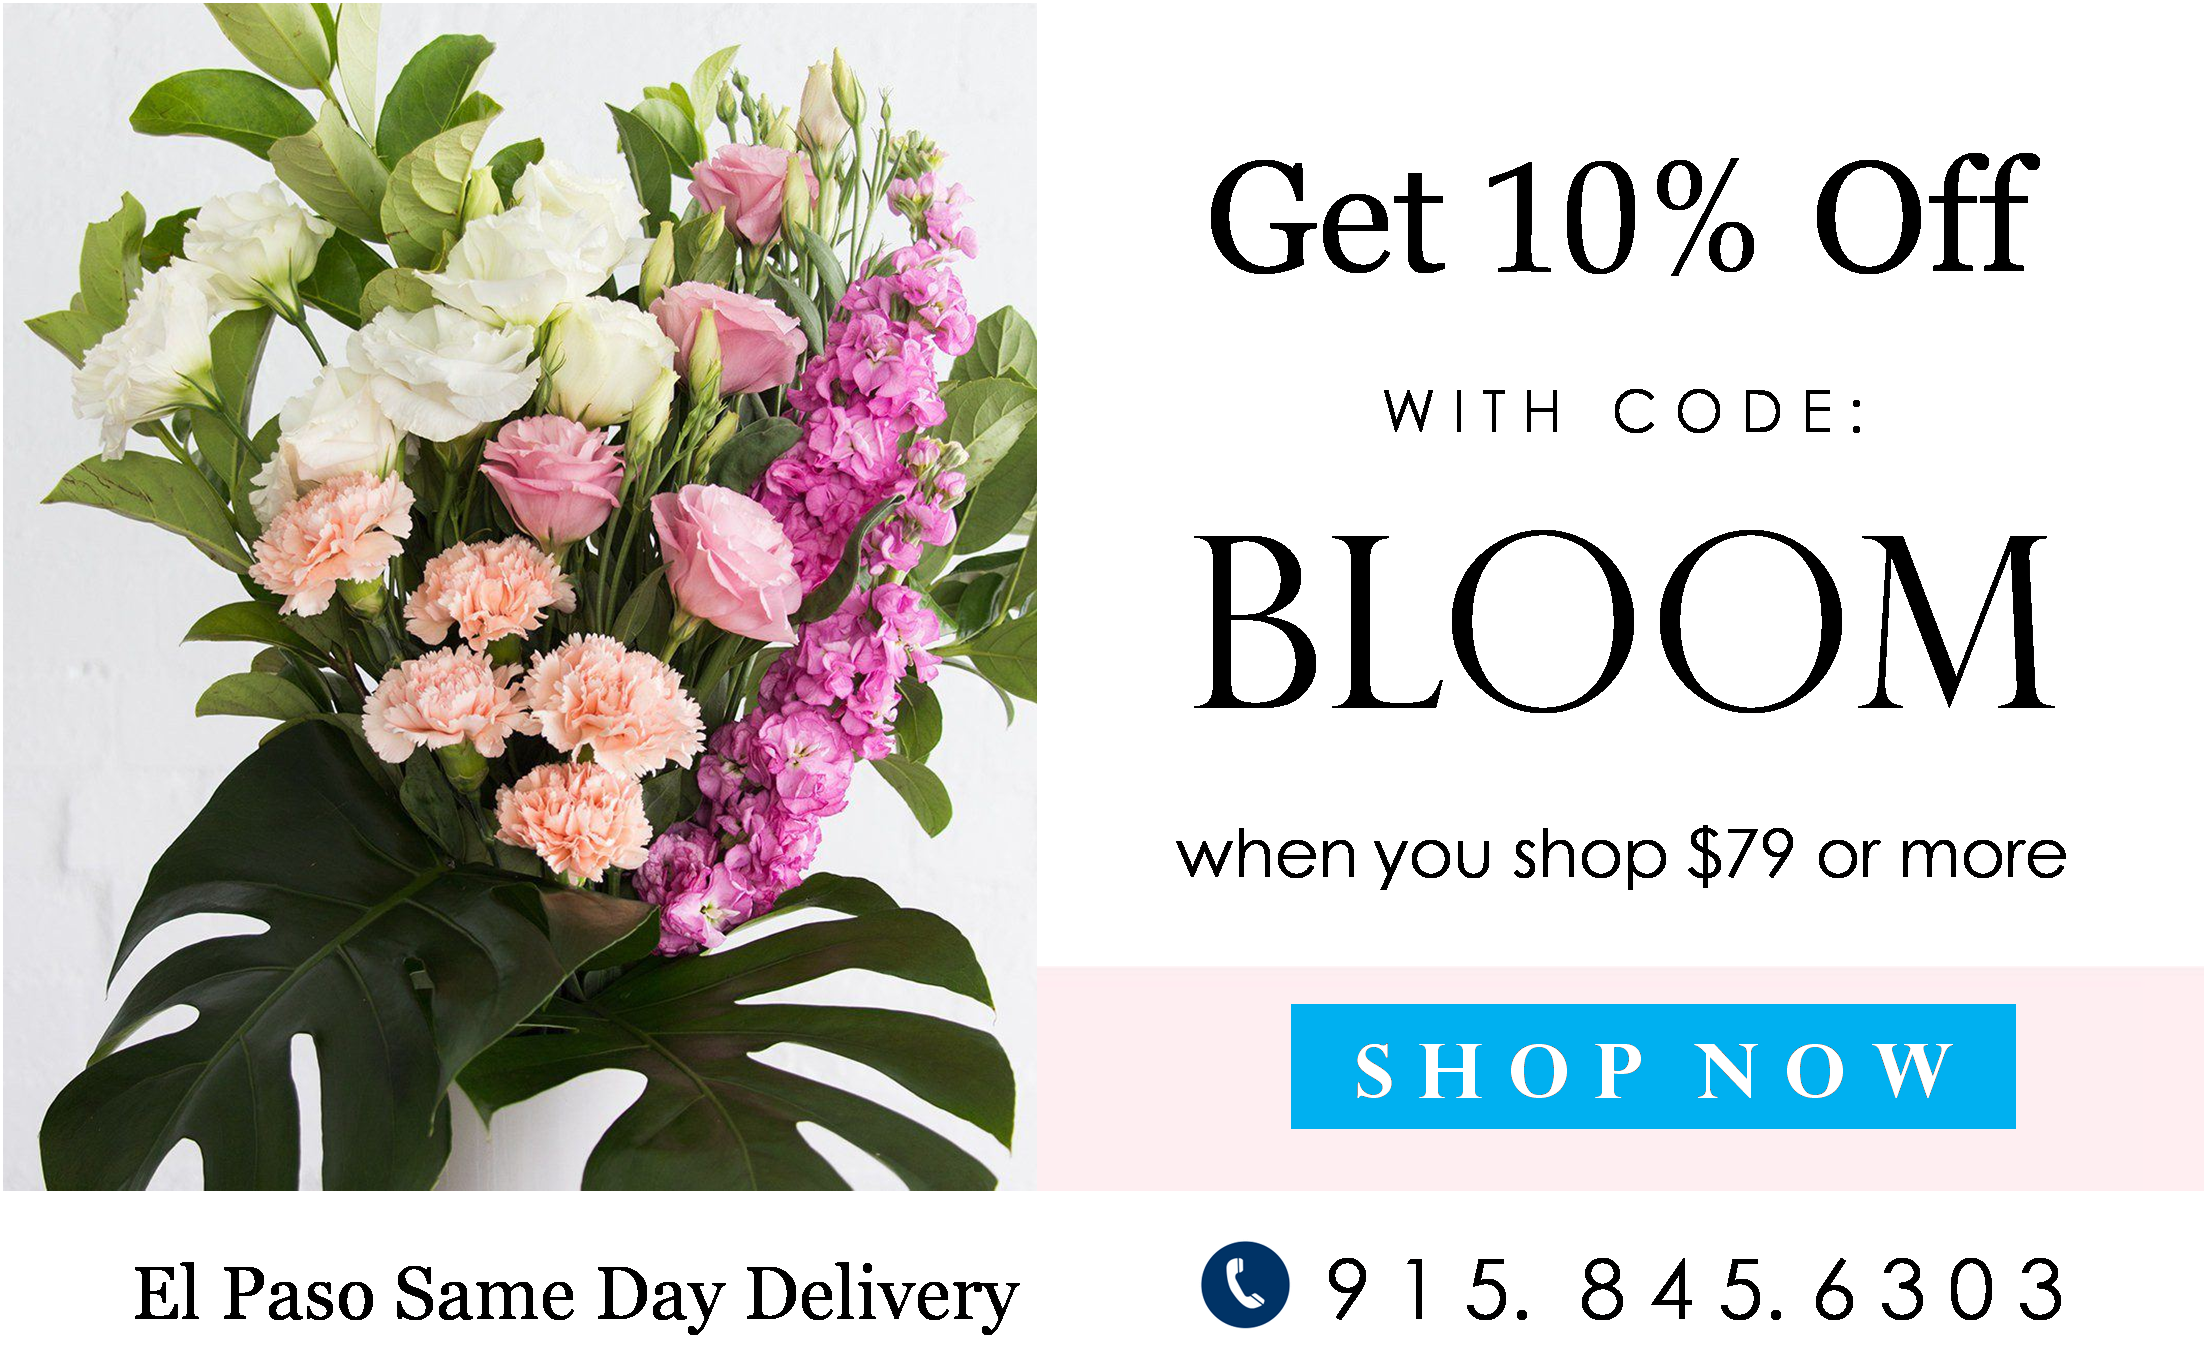 we-make-el-paso-bloom-with-luxury-gifts-rose-boxes-angies-floral-designs-angies-we-make-el-paso-bloom-floral-designs-rose-ladders-el-paso-florist-79912-west-angies-flower.png